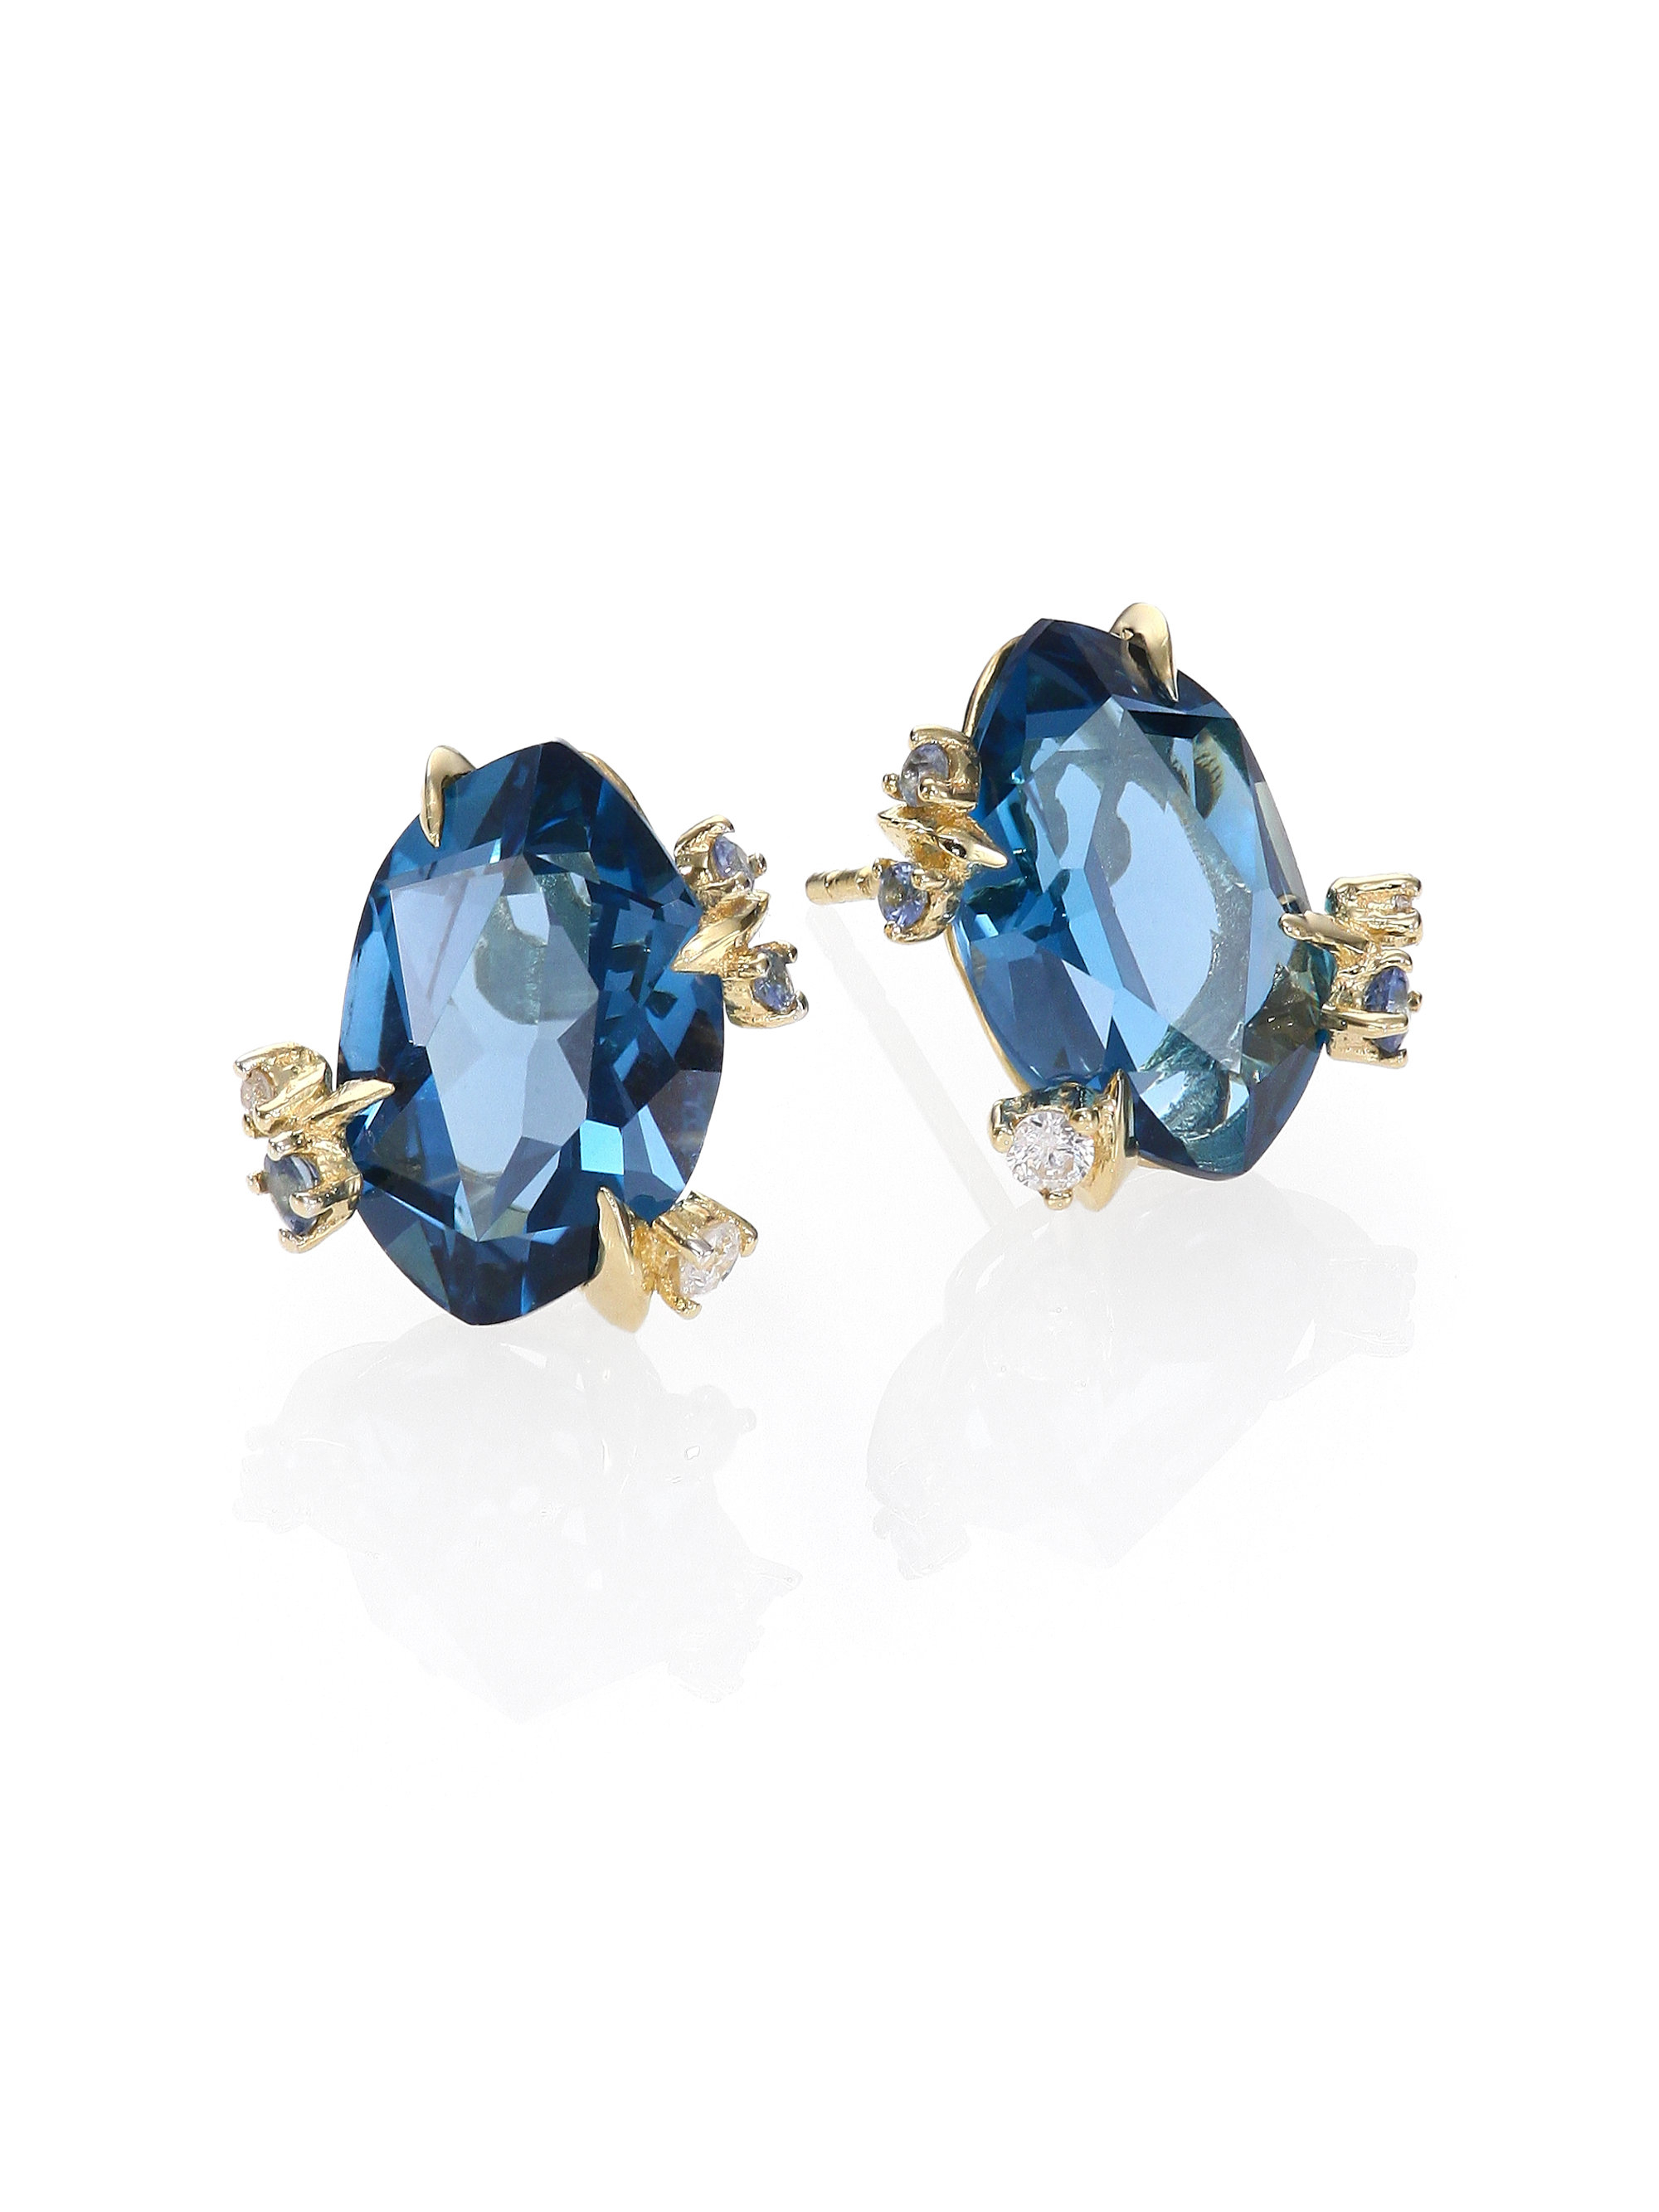 size baker jewellery stud facetted pale franki sapphire topaz silver natural blue earrings search sterling